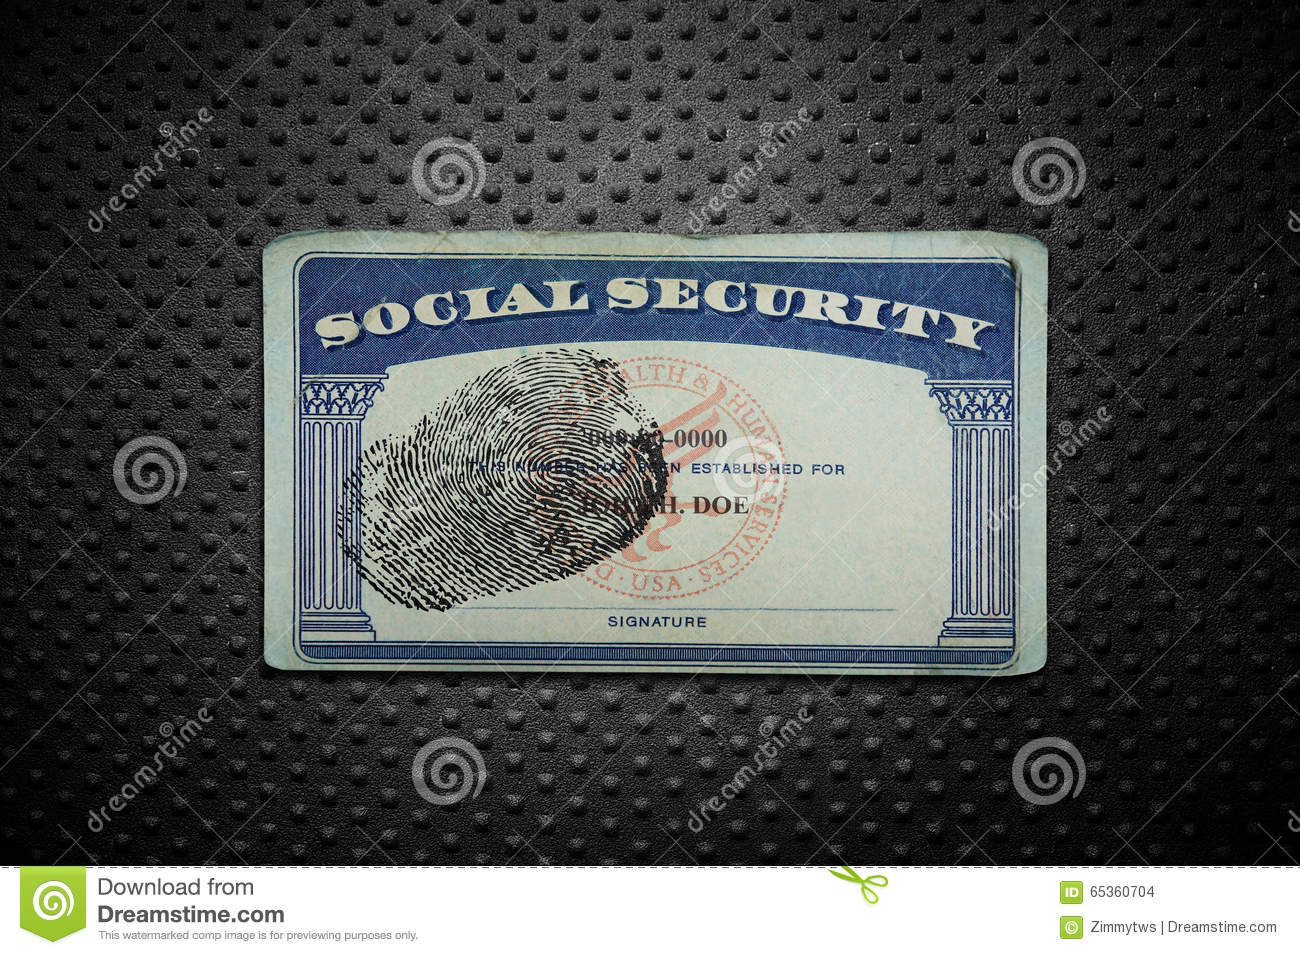 Social Security card stock photo. Image of blank, grunge ...